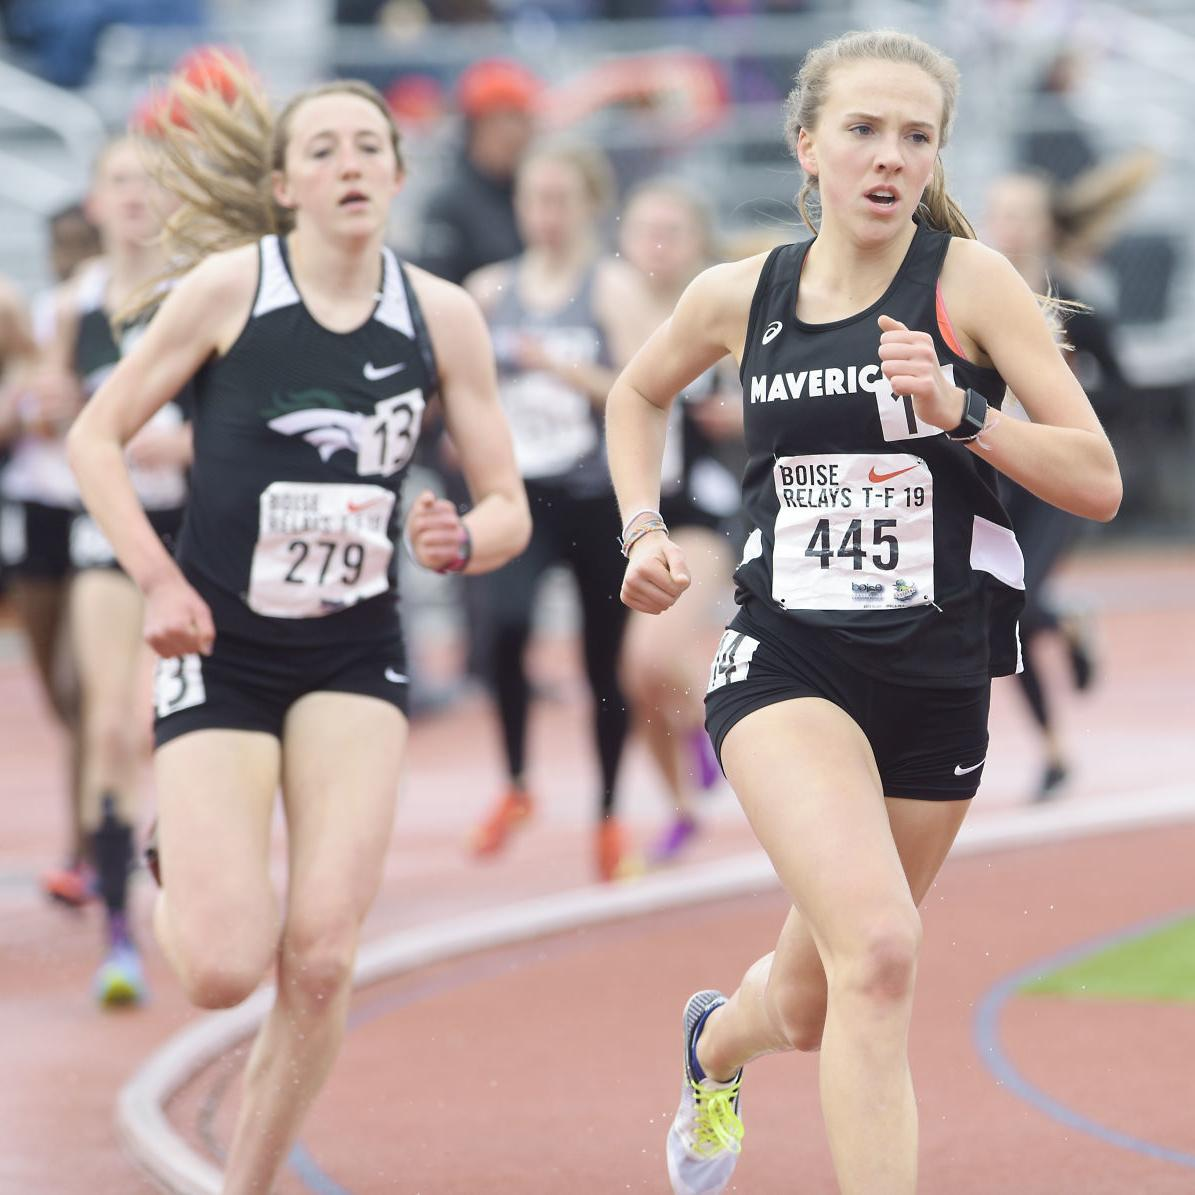 Mountain View's Lexy Halladay is Gatorade Player of the Year - again.